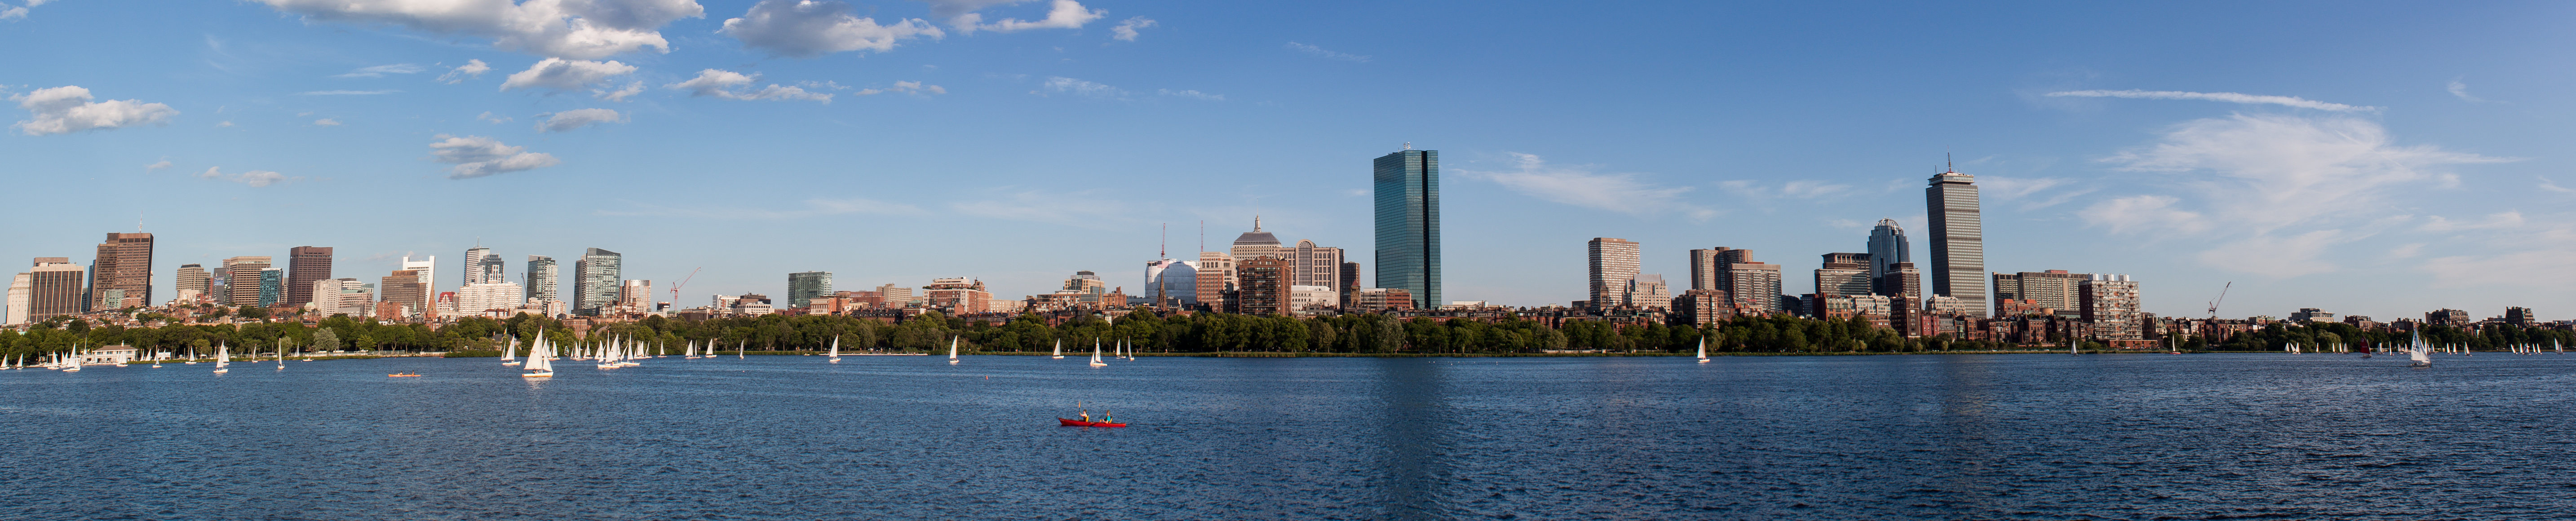 Boston_Skyline_192366